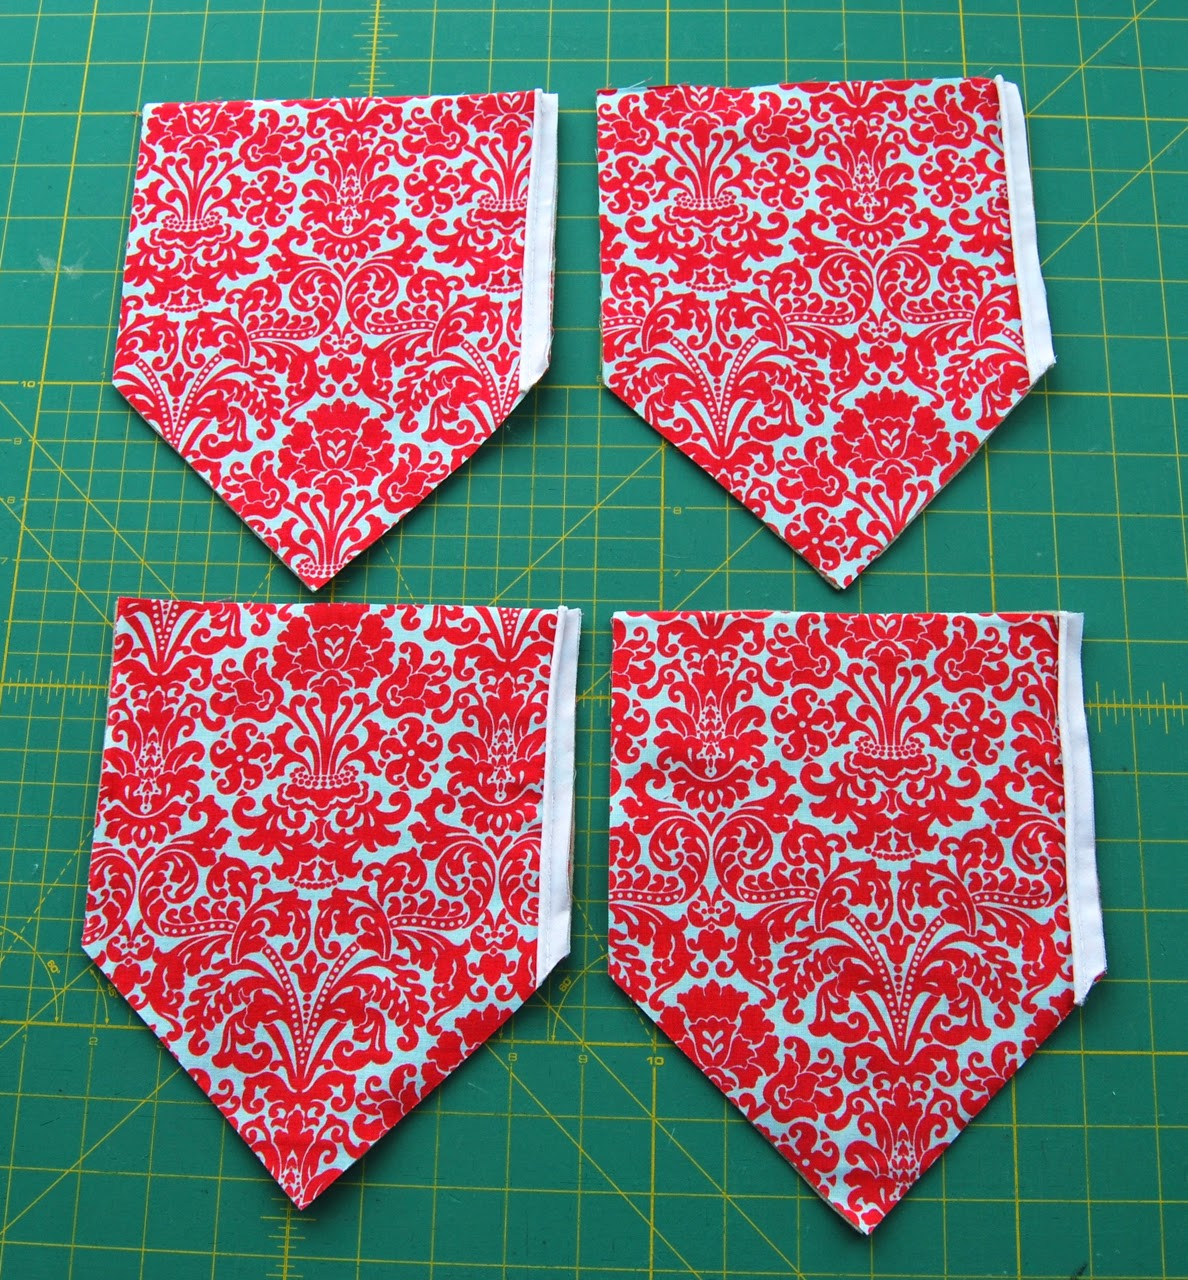 exterior pieces with piping sewn on